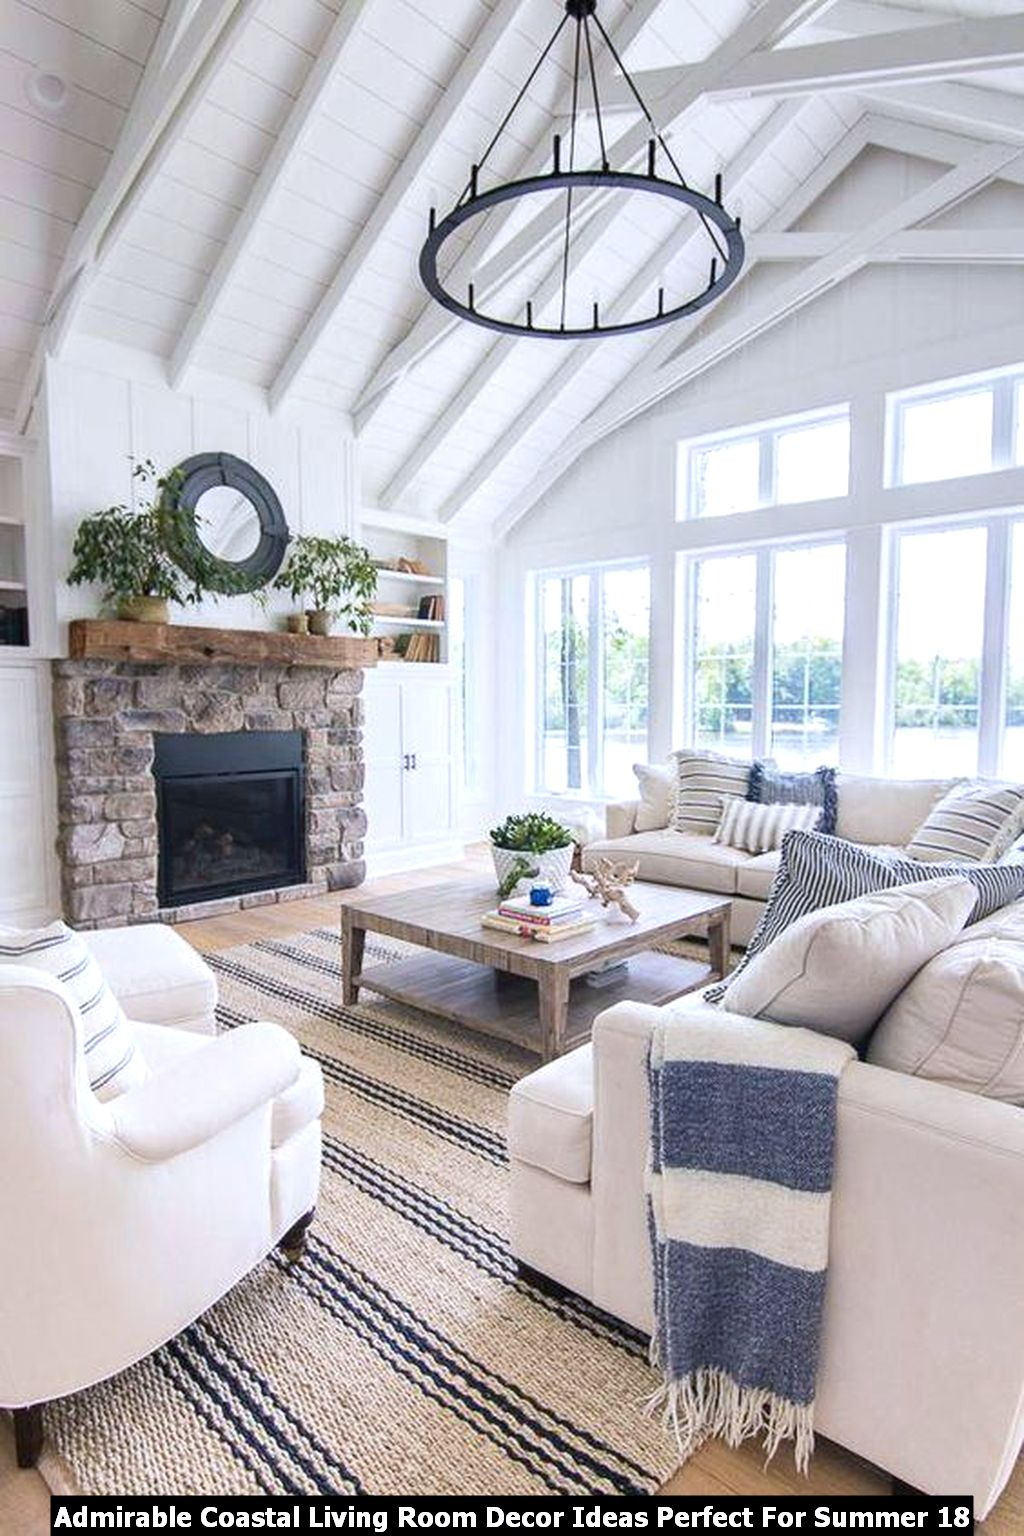 Admirable Coastal Living Room Decor Ideas Perfect For Summer 18